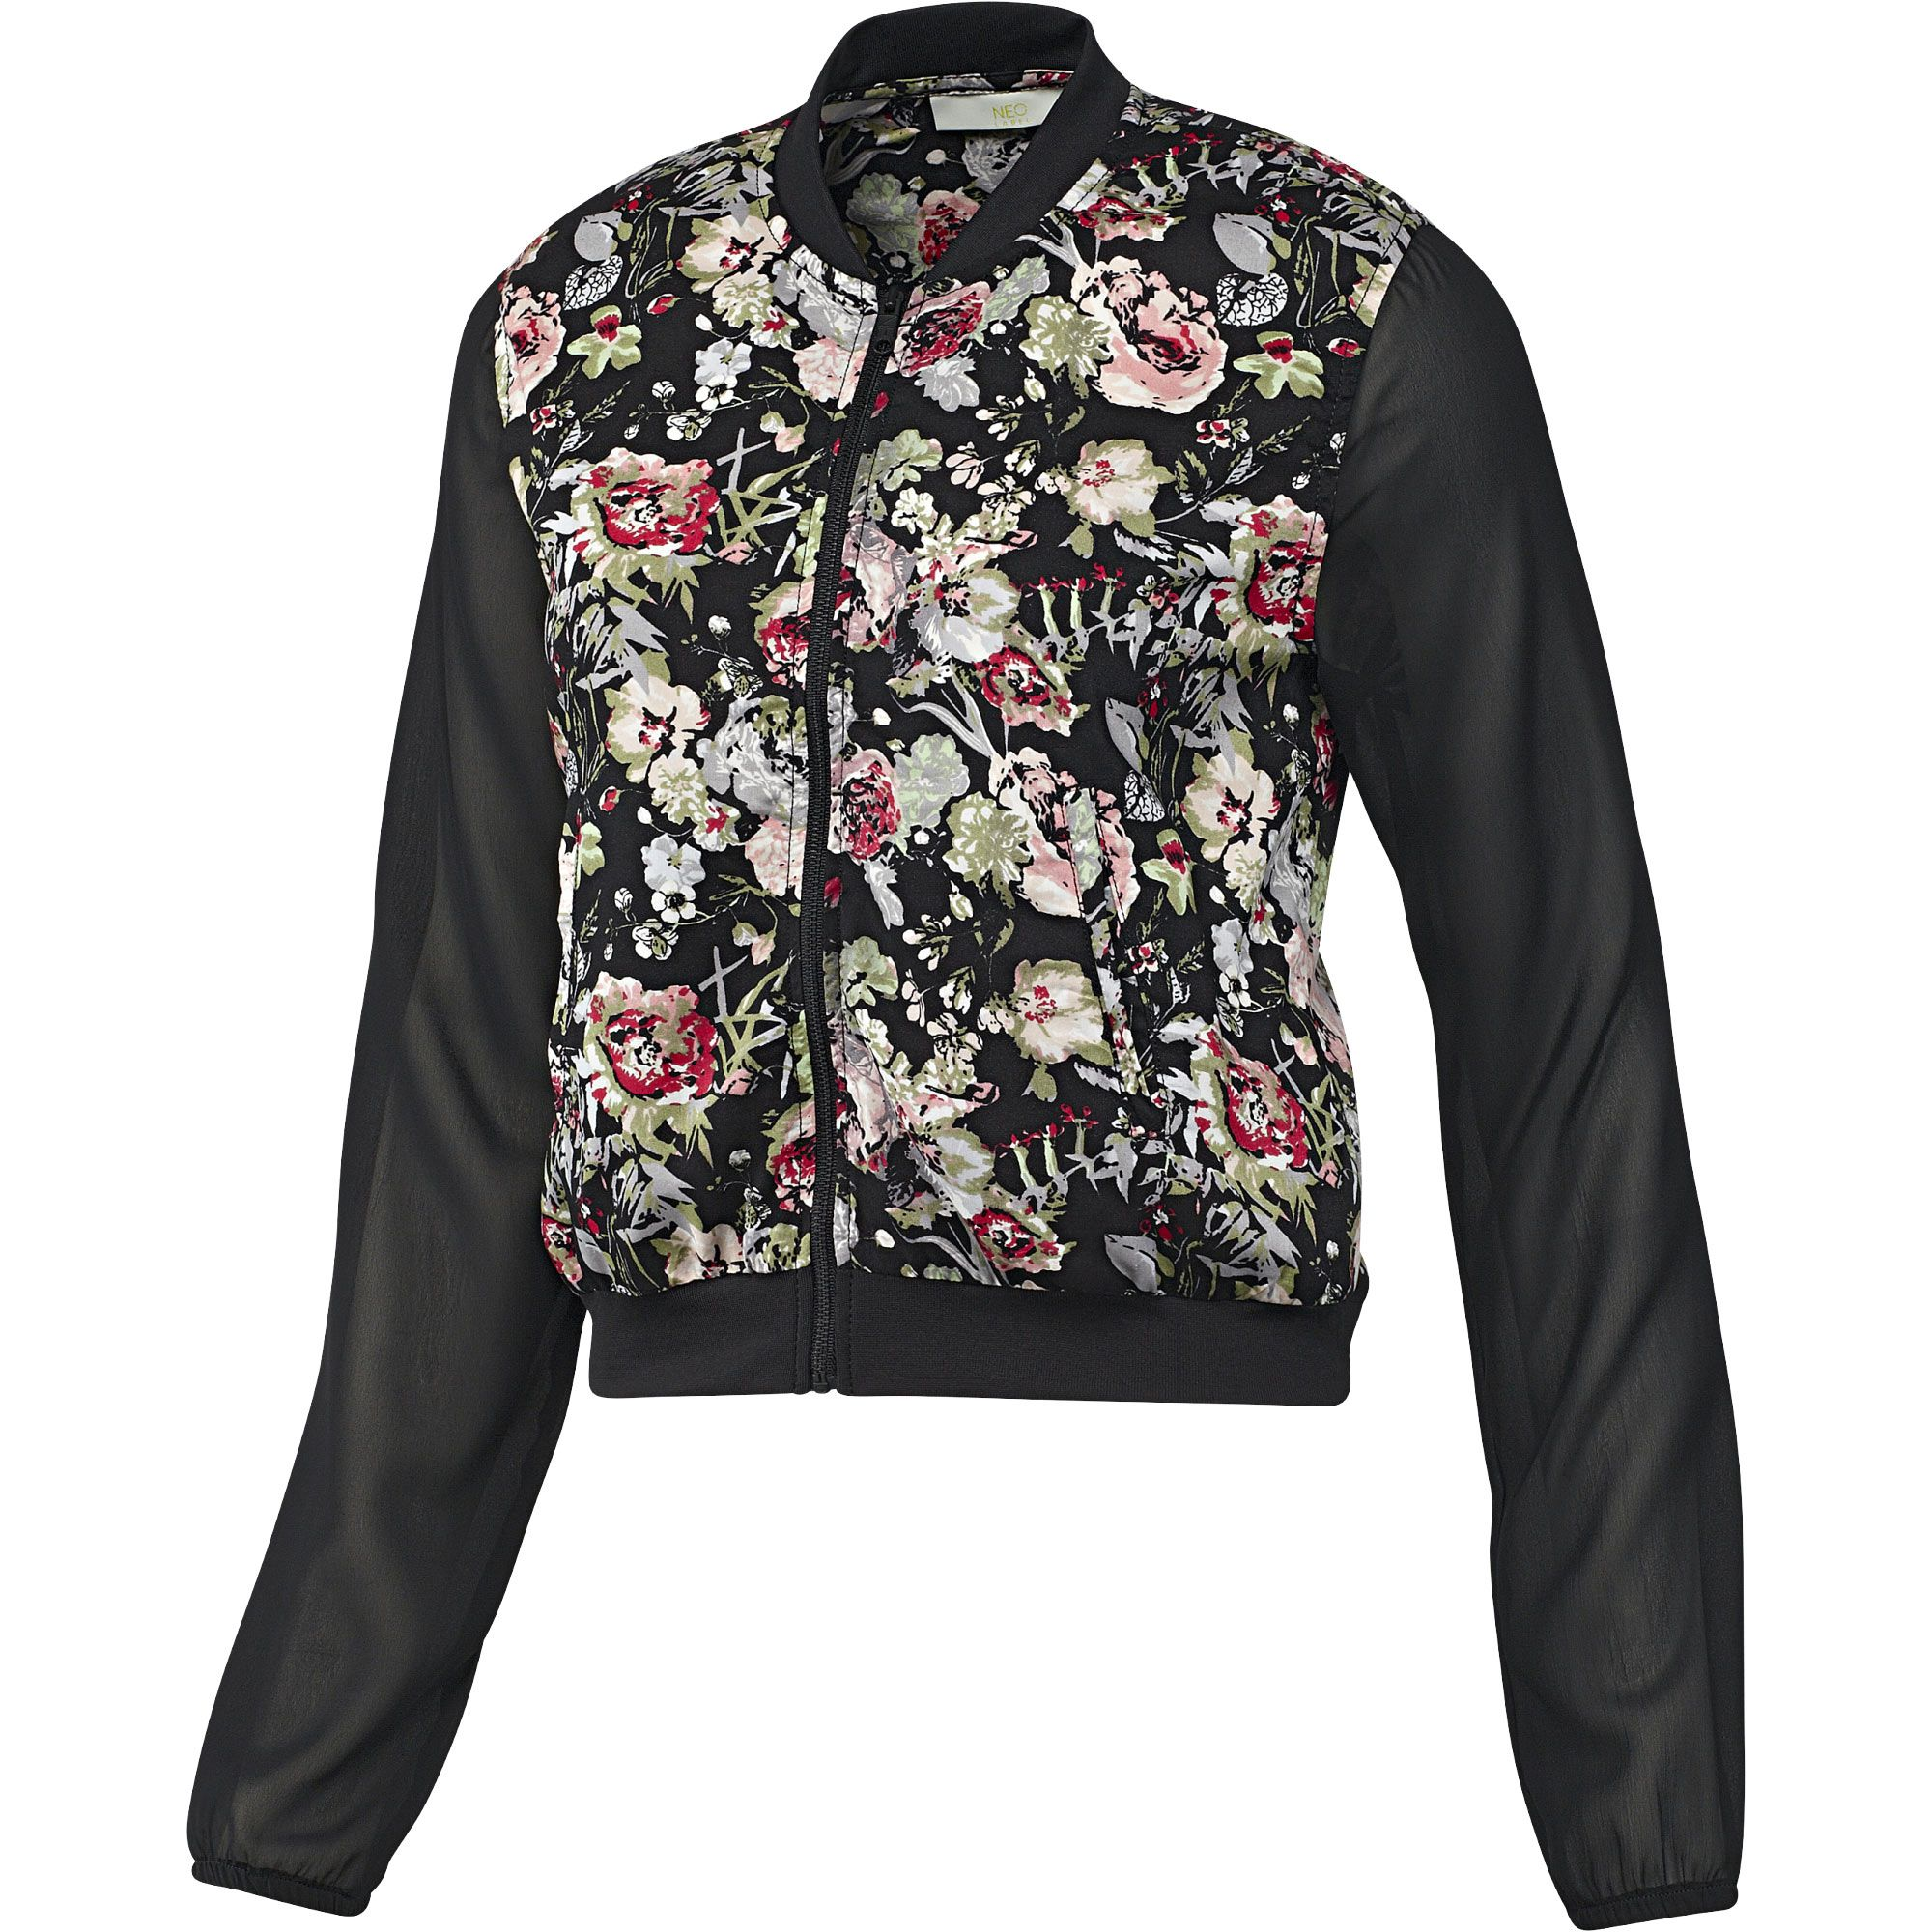 Top NEO Flower Selena Gomez Mujer adidas | adidas Chile